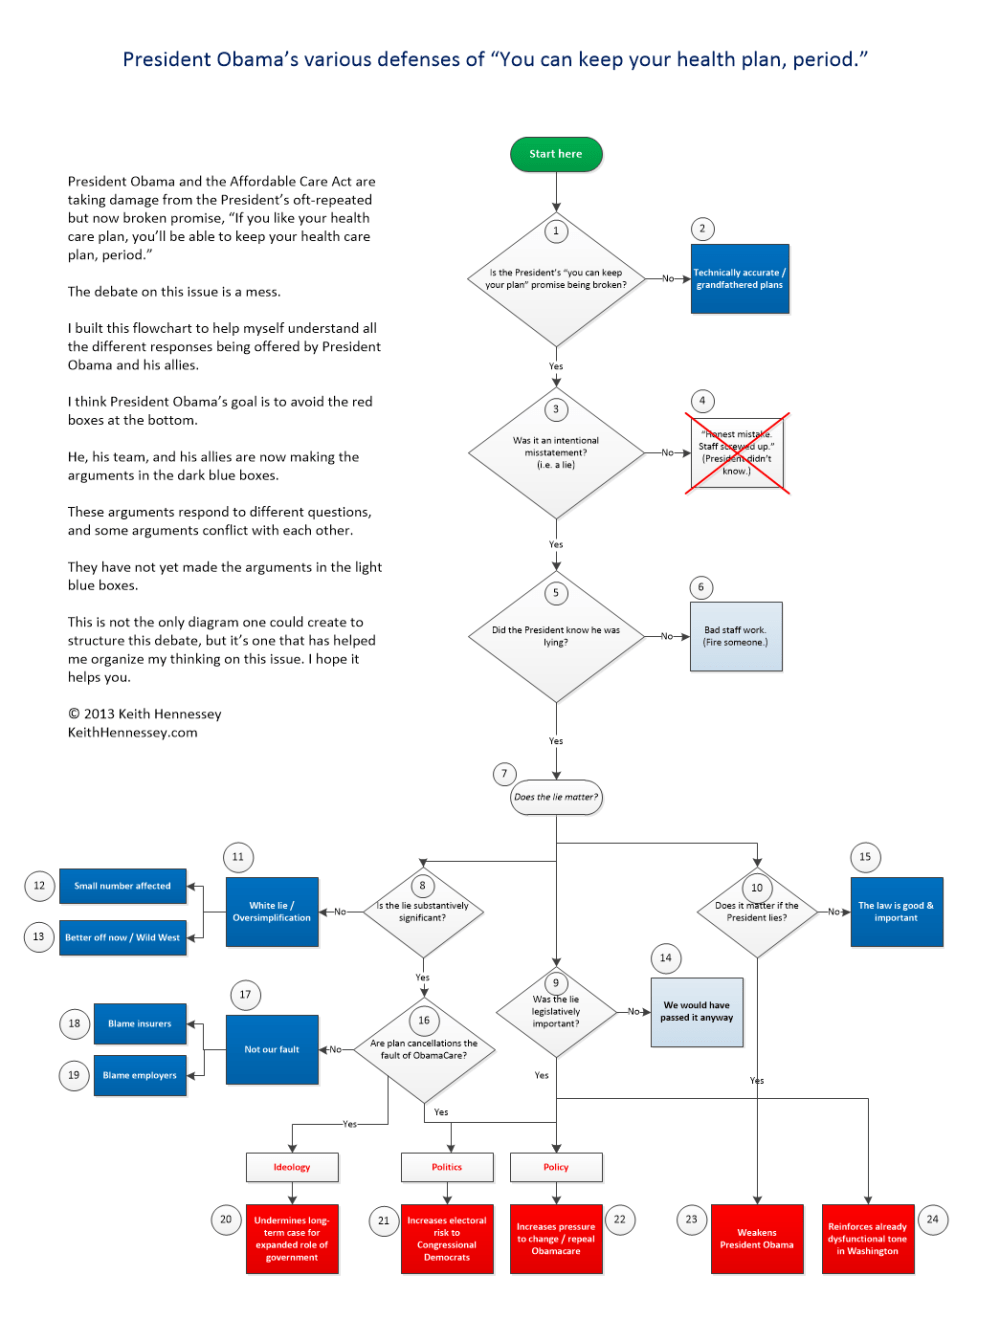 medium resolution of flowchart of president obama s you can keep your plan period defenses